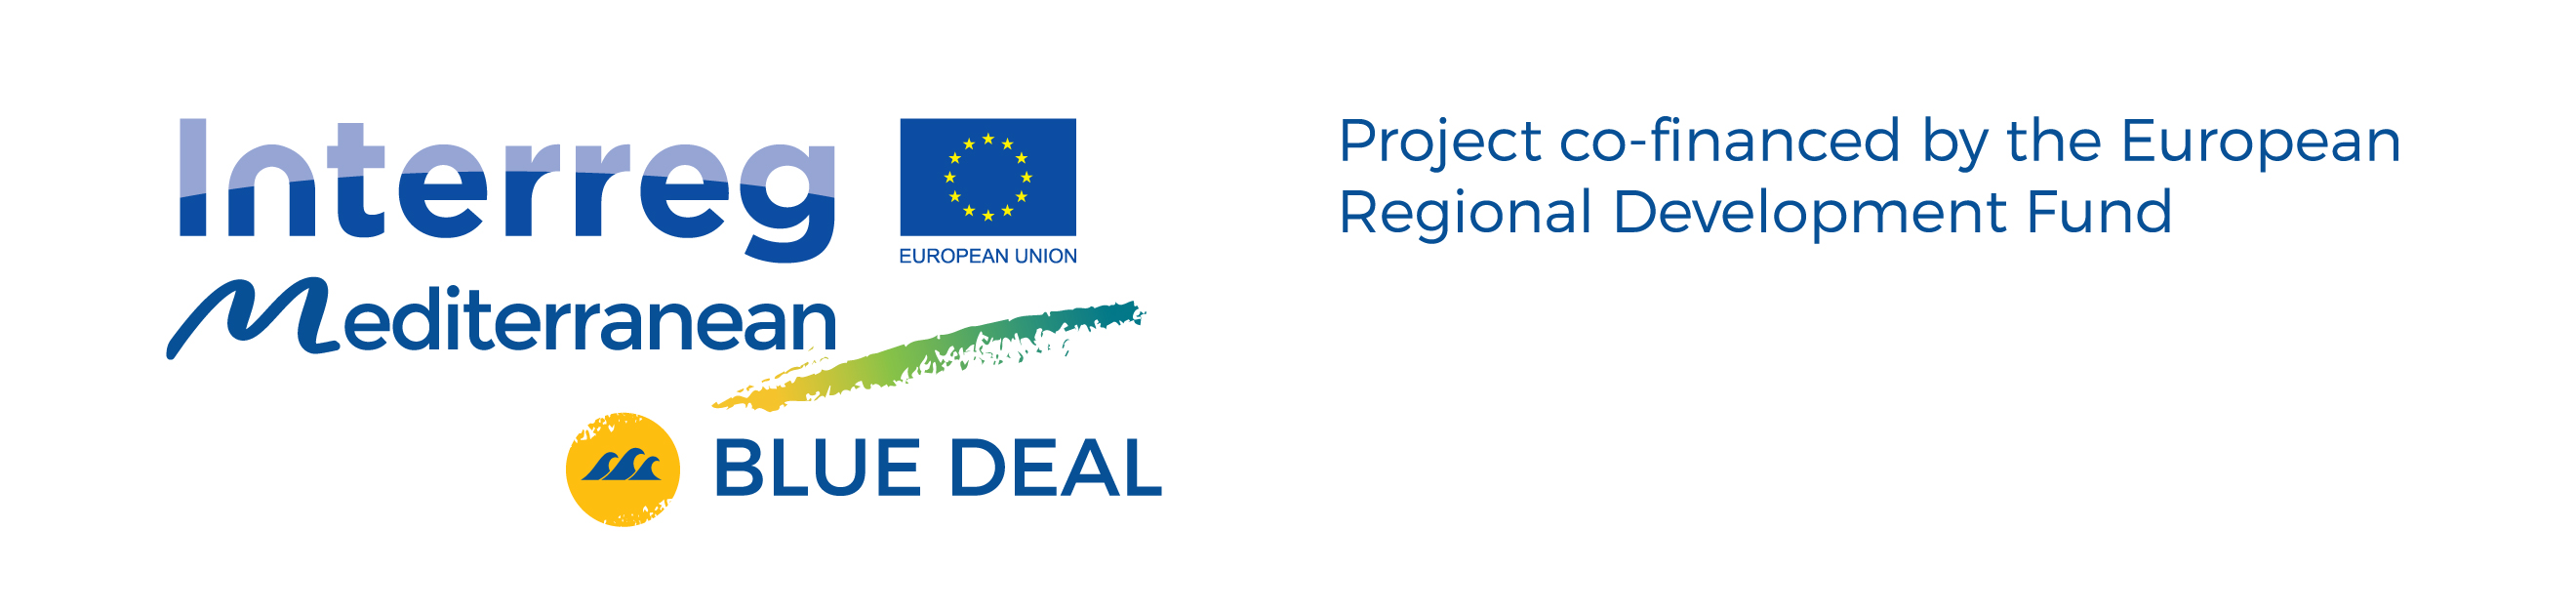 Blue Deal - CEEI Valencia